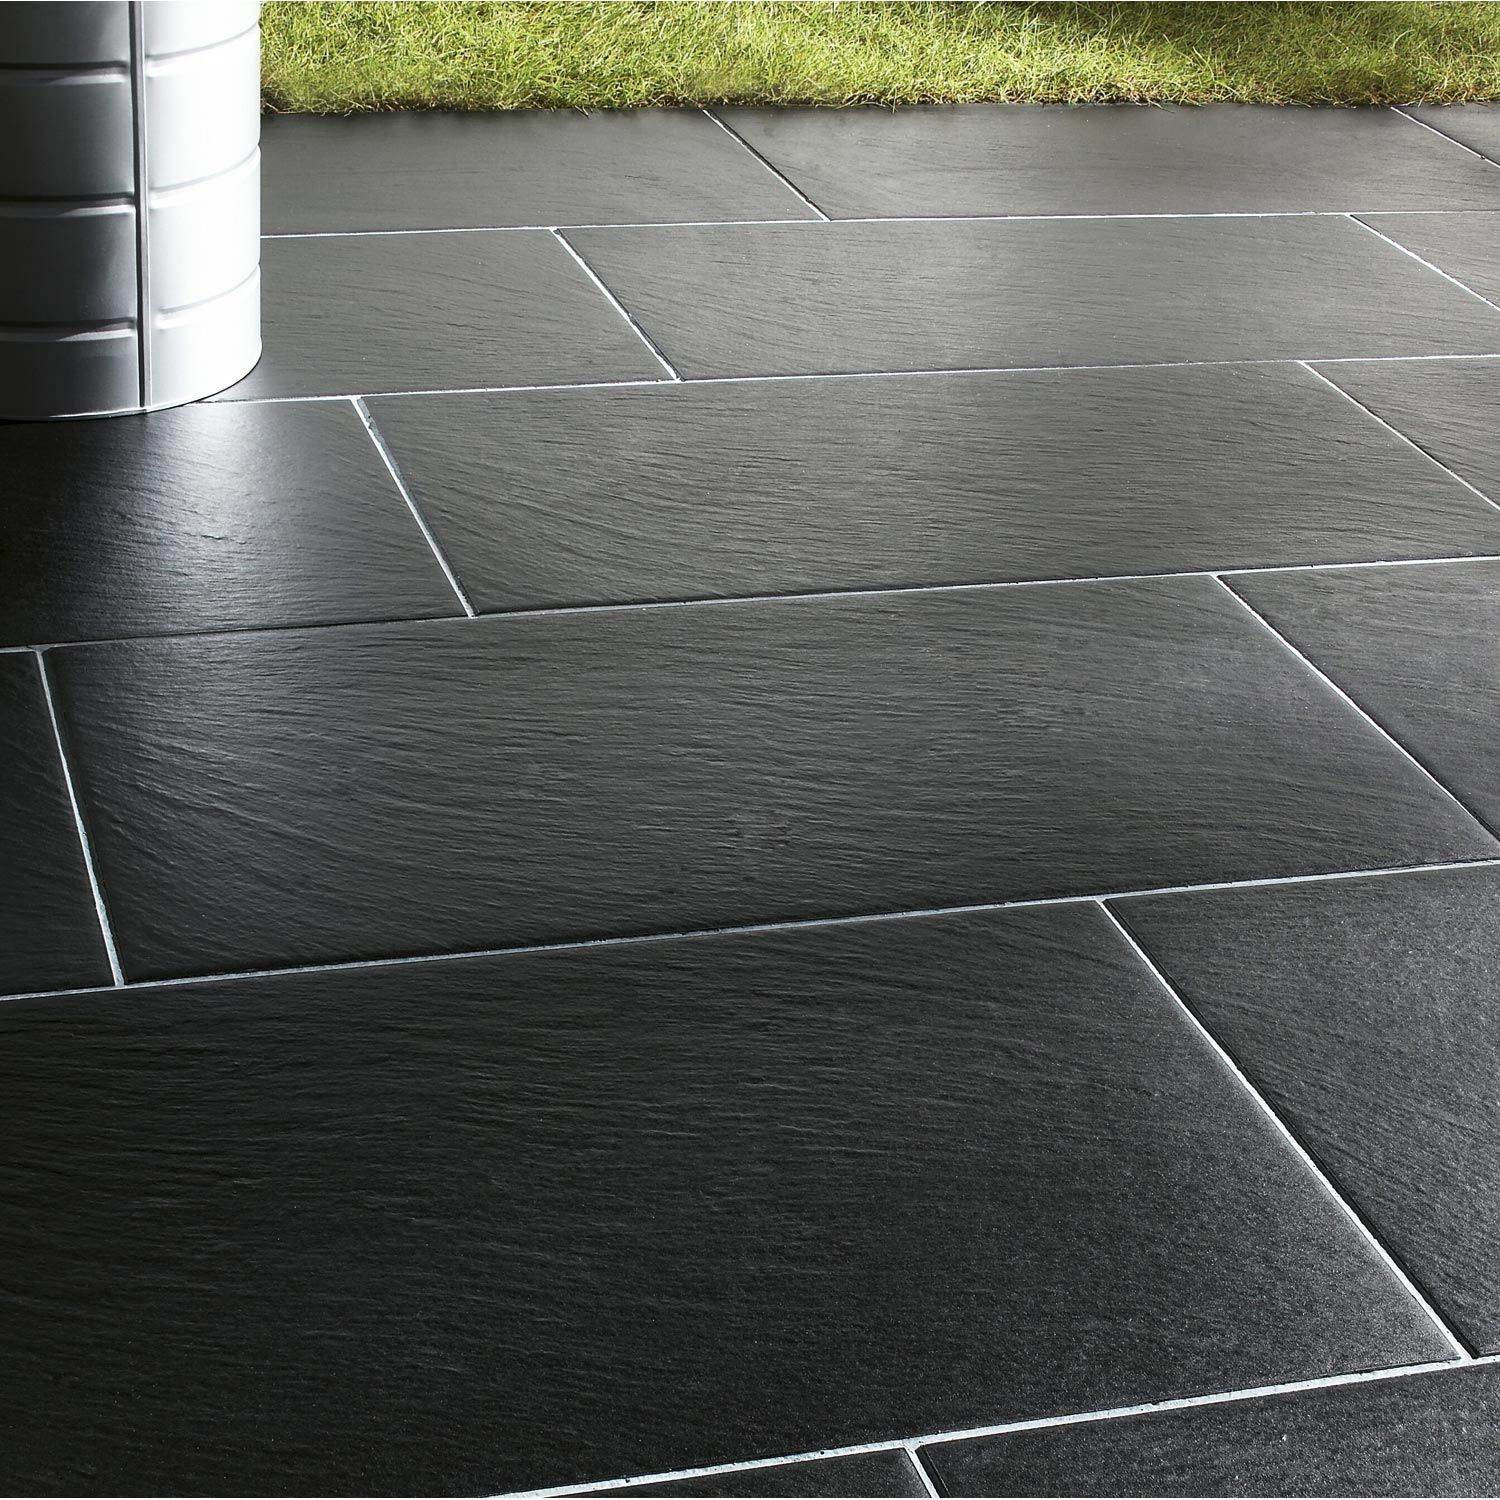 Carrelage Gris Anthracite Terrasse Atwebsterfr Maison Et Mobilier - Photo terrasse carrelage gris